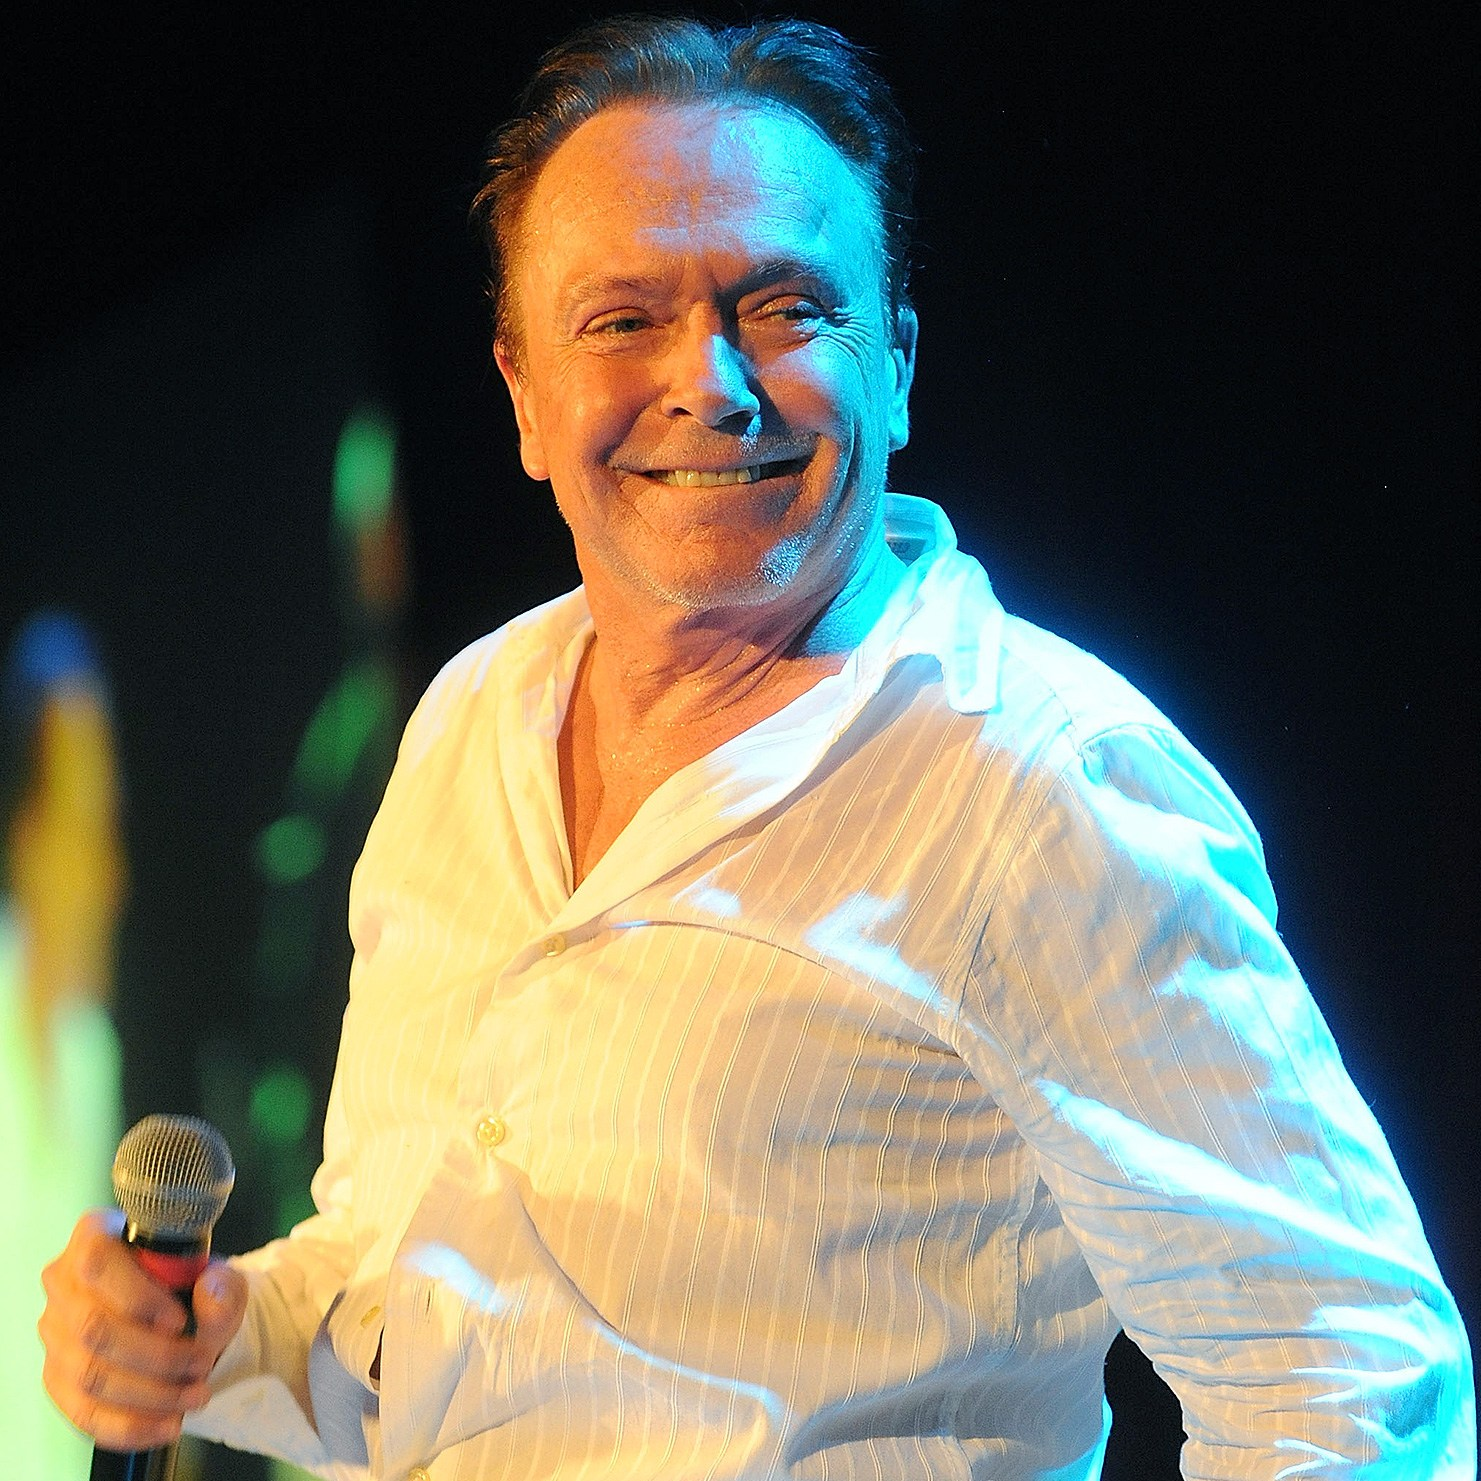 David Cassidy, Death, Liver, Organ Failure